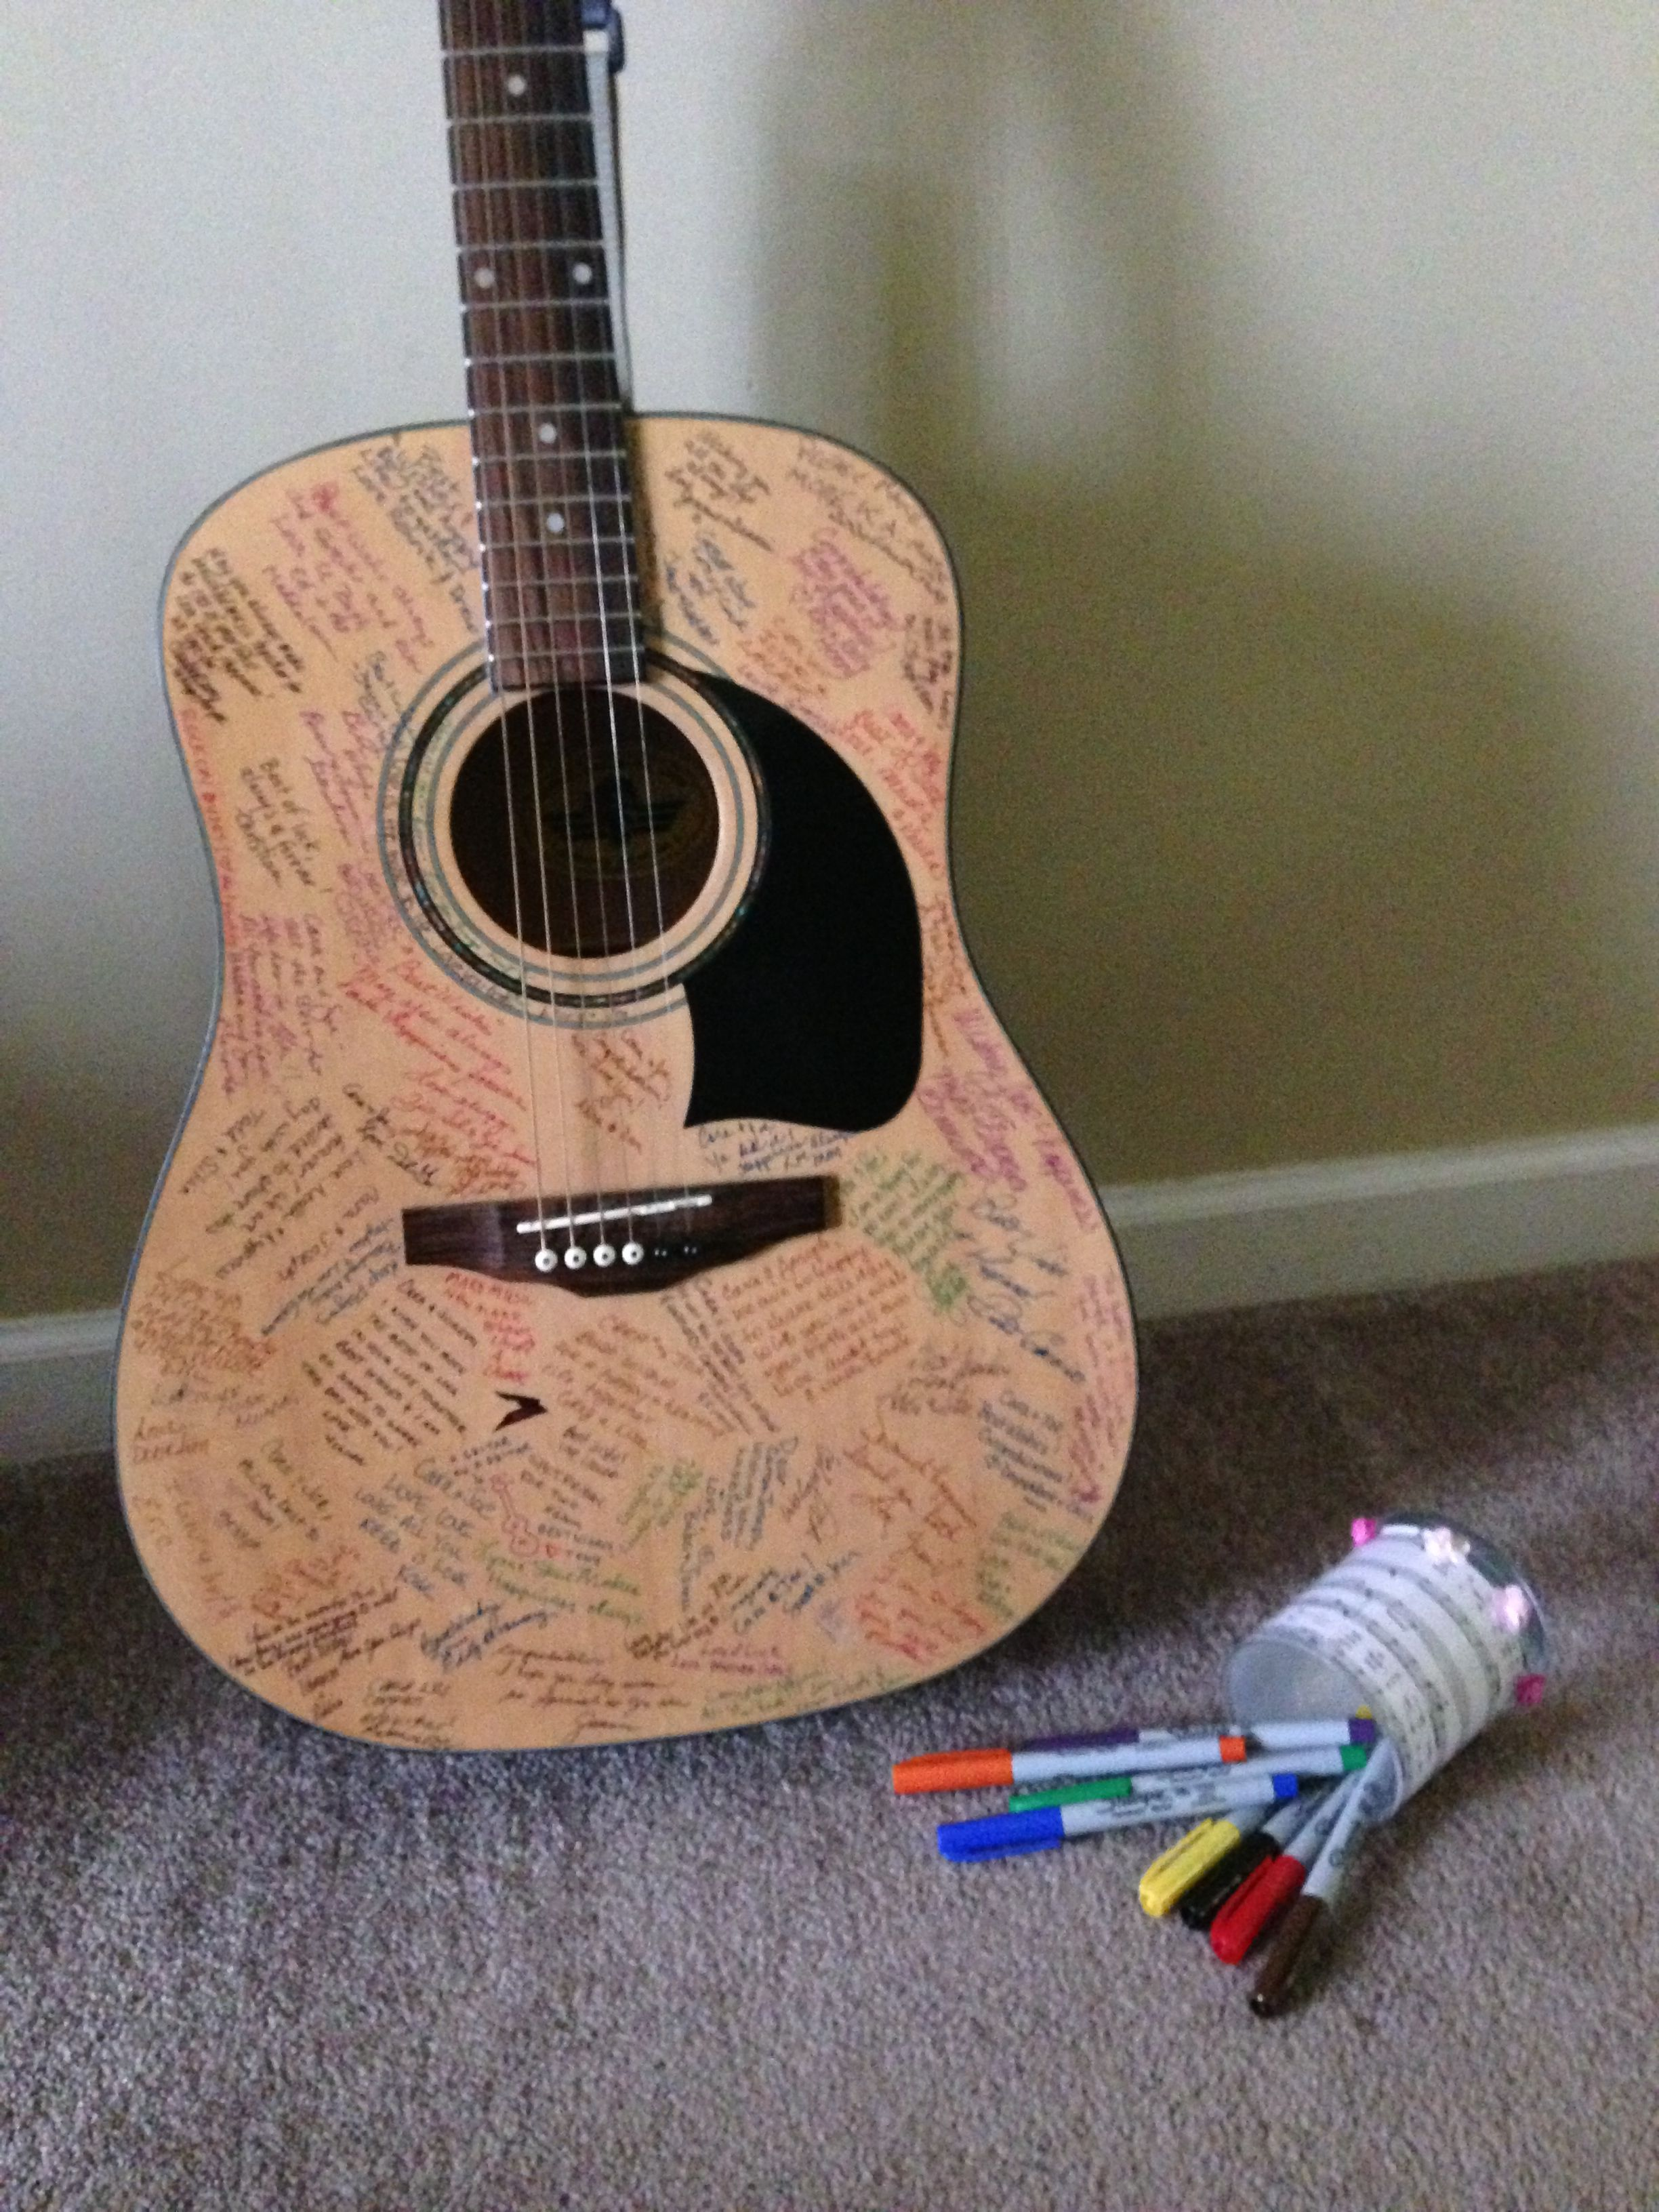 """Guitar Guest Book complete! Well-wishes from our Family and Friends were written using """"Sharpie Ultra Fine"""" Markers so they didn't smudge. We are going to hang this special piece of art on our wall in the near future so we will always remember how we first met. (Also, a reminder of how awesome our wedding day was!)"""